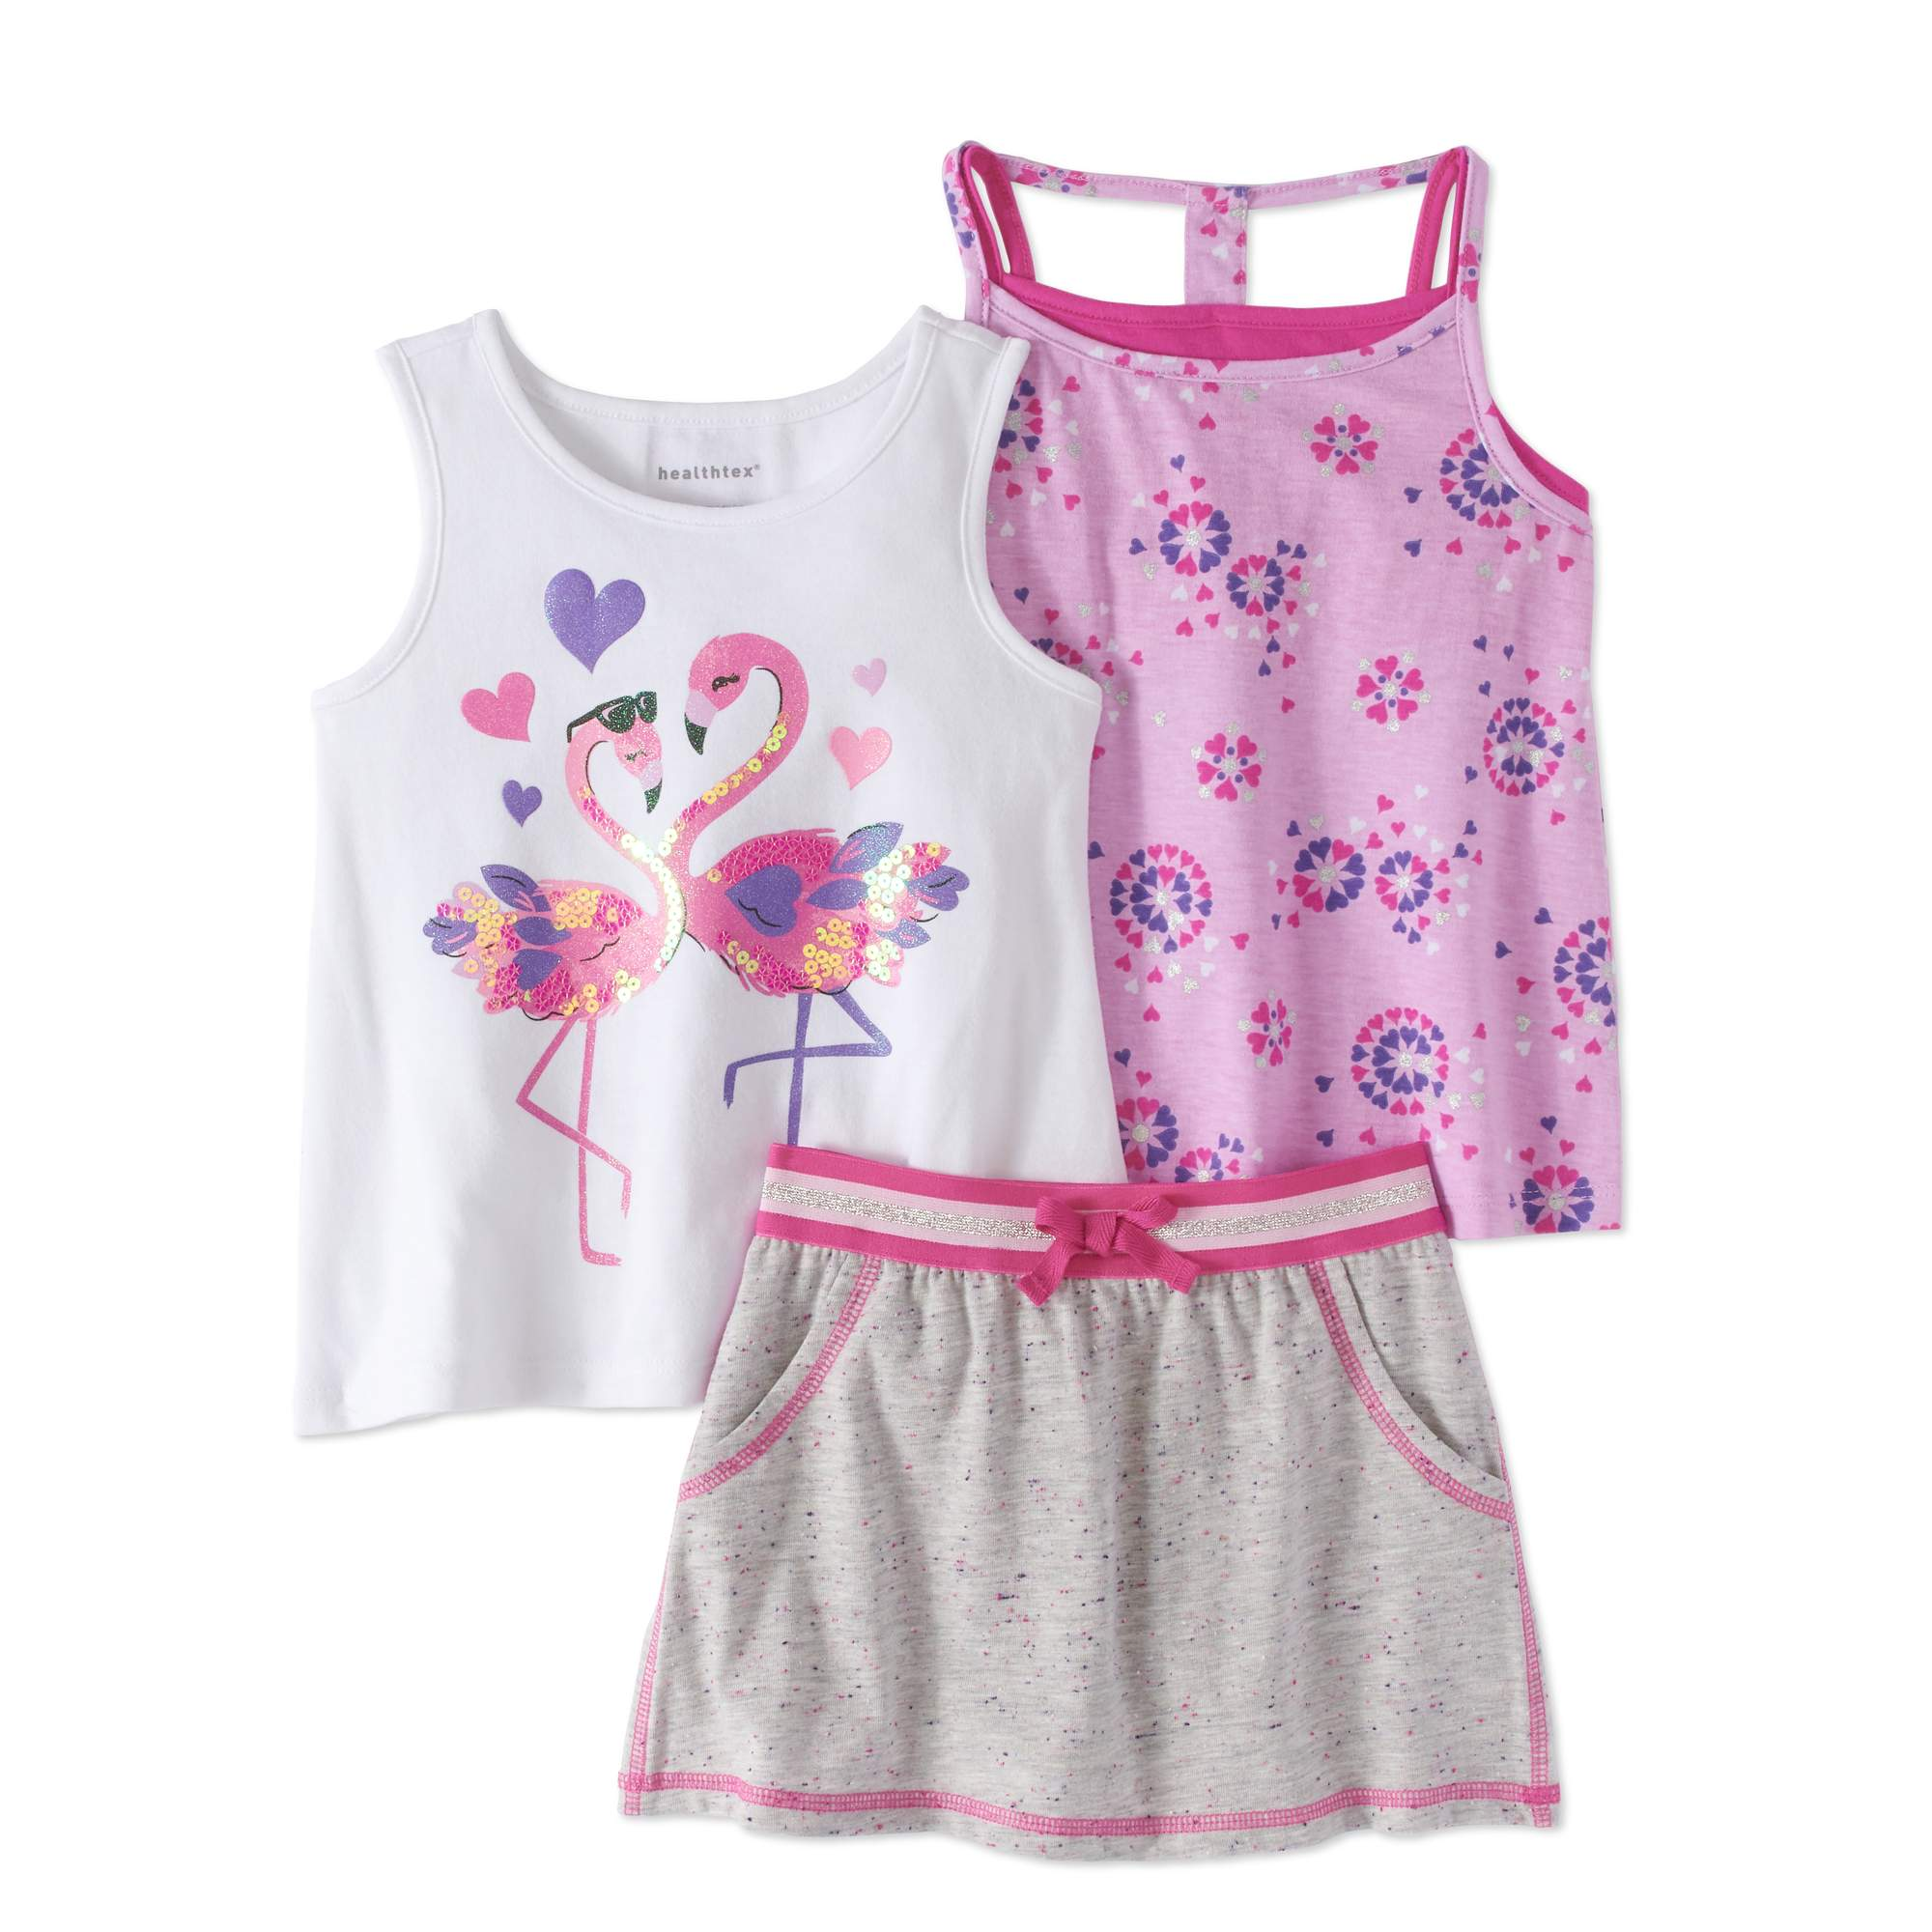 Healthtex Toddler Girls' Tank Top, Open-Back Tank Top and Scooter Skirt 3-Piece Outfit Set